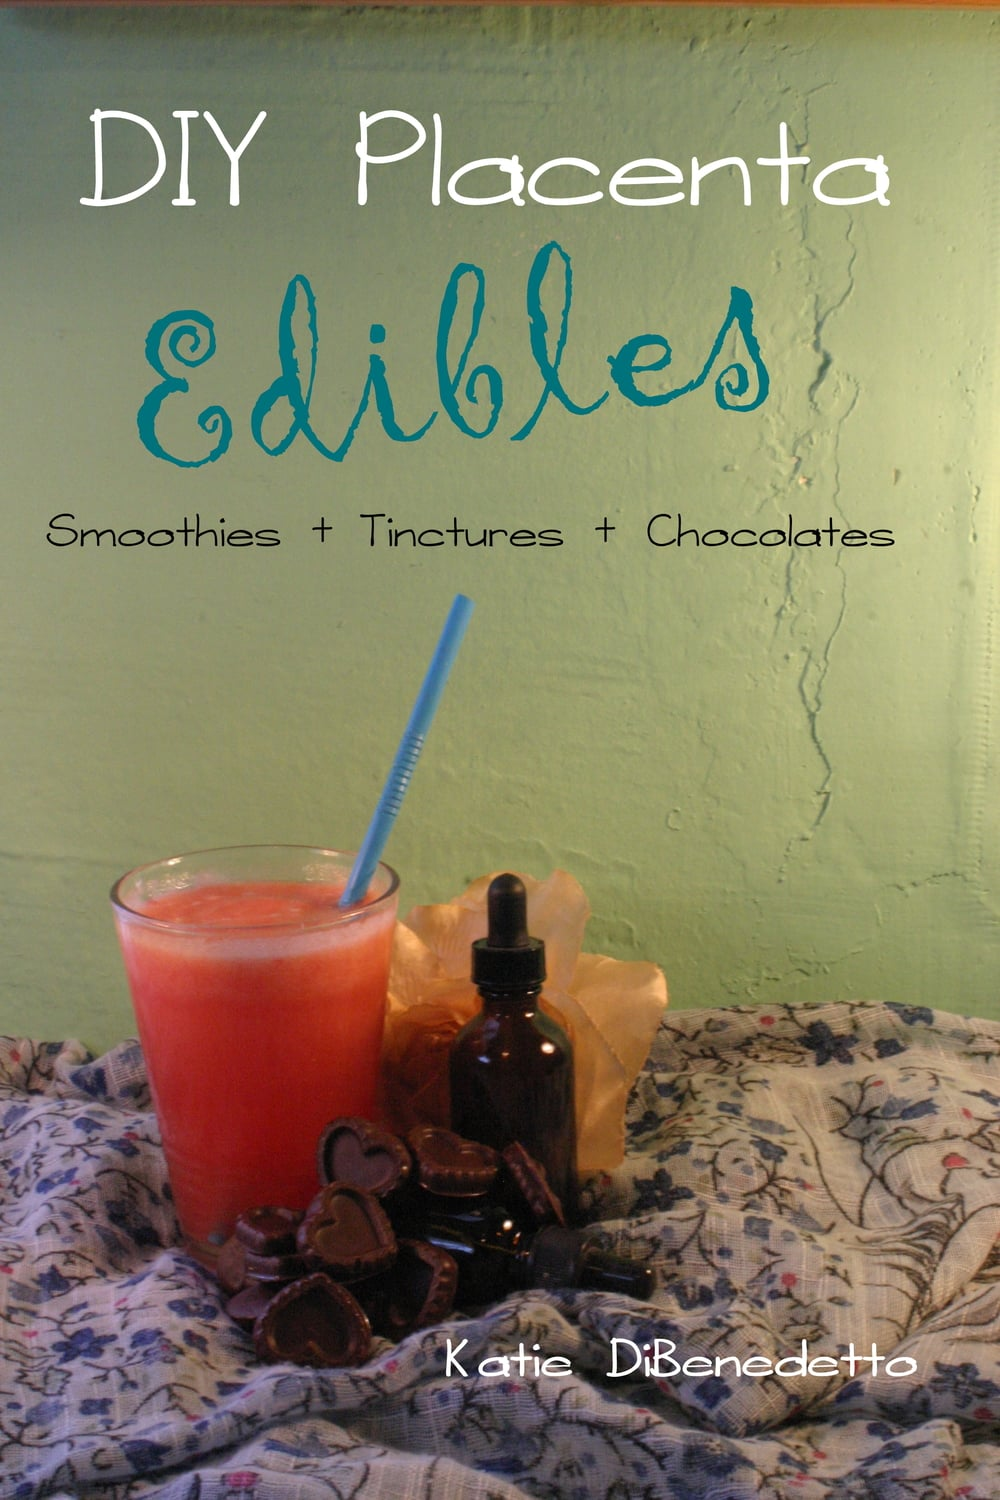 DIY Placenta Edibles | Cock & Crow #placenta #diy #smoothie